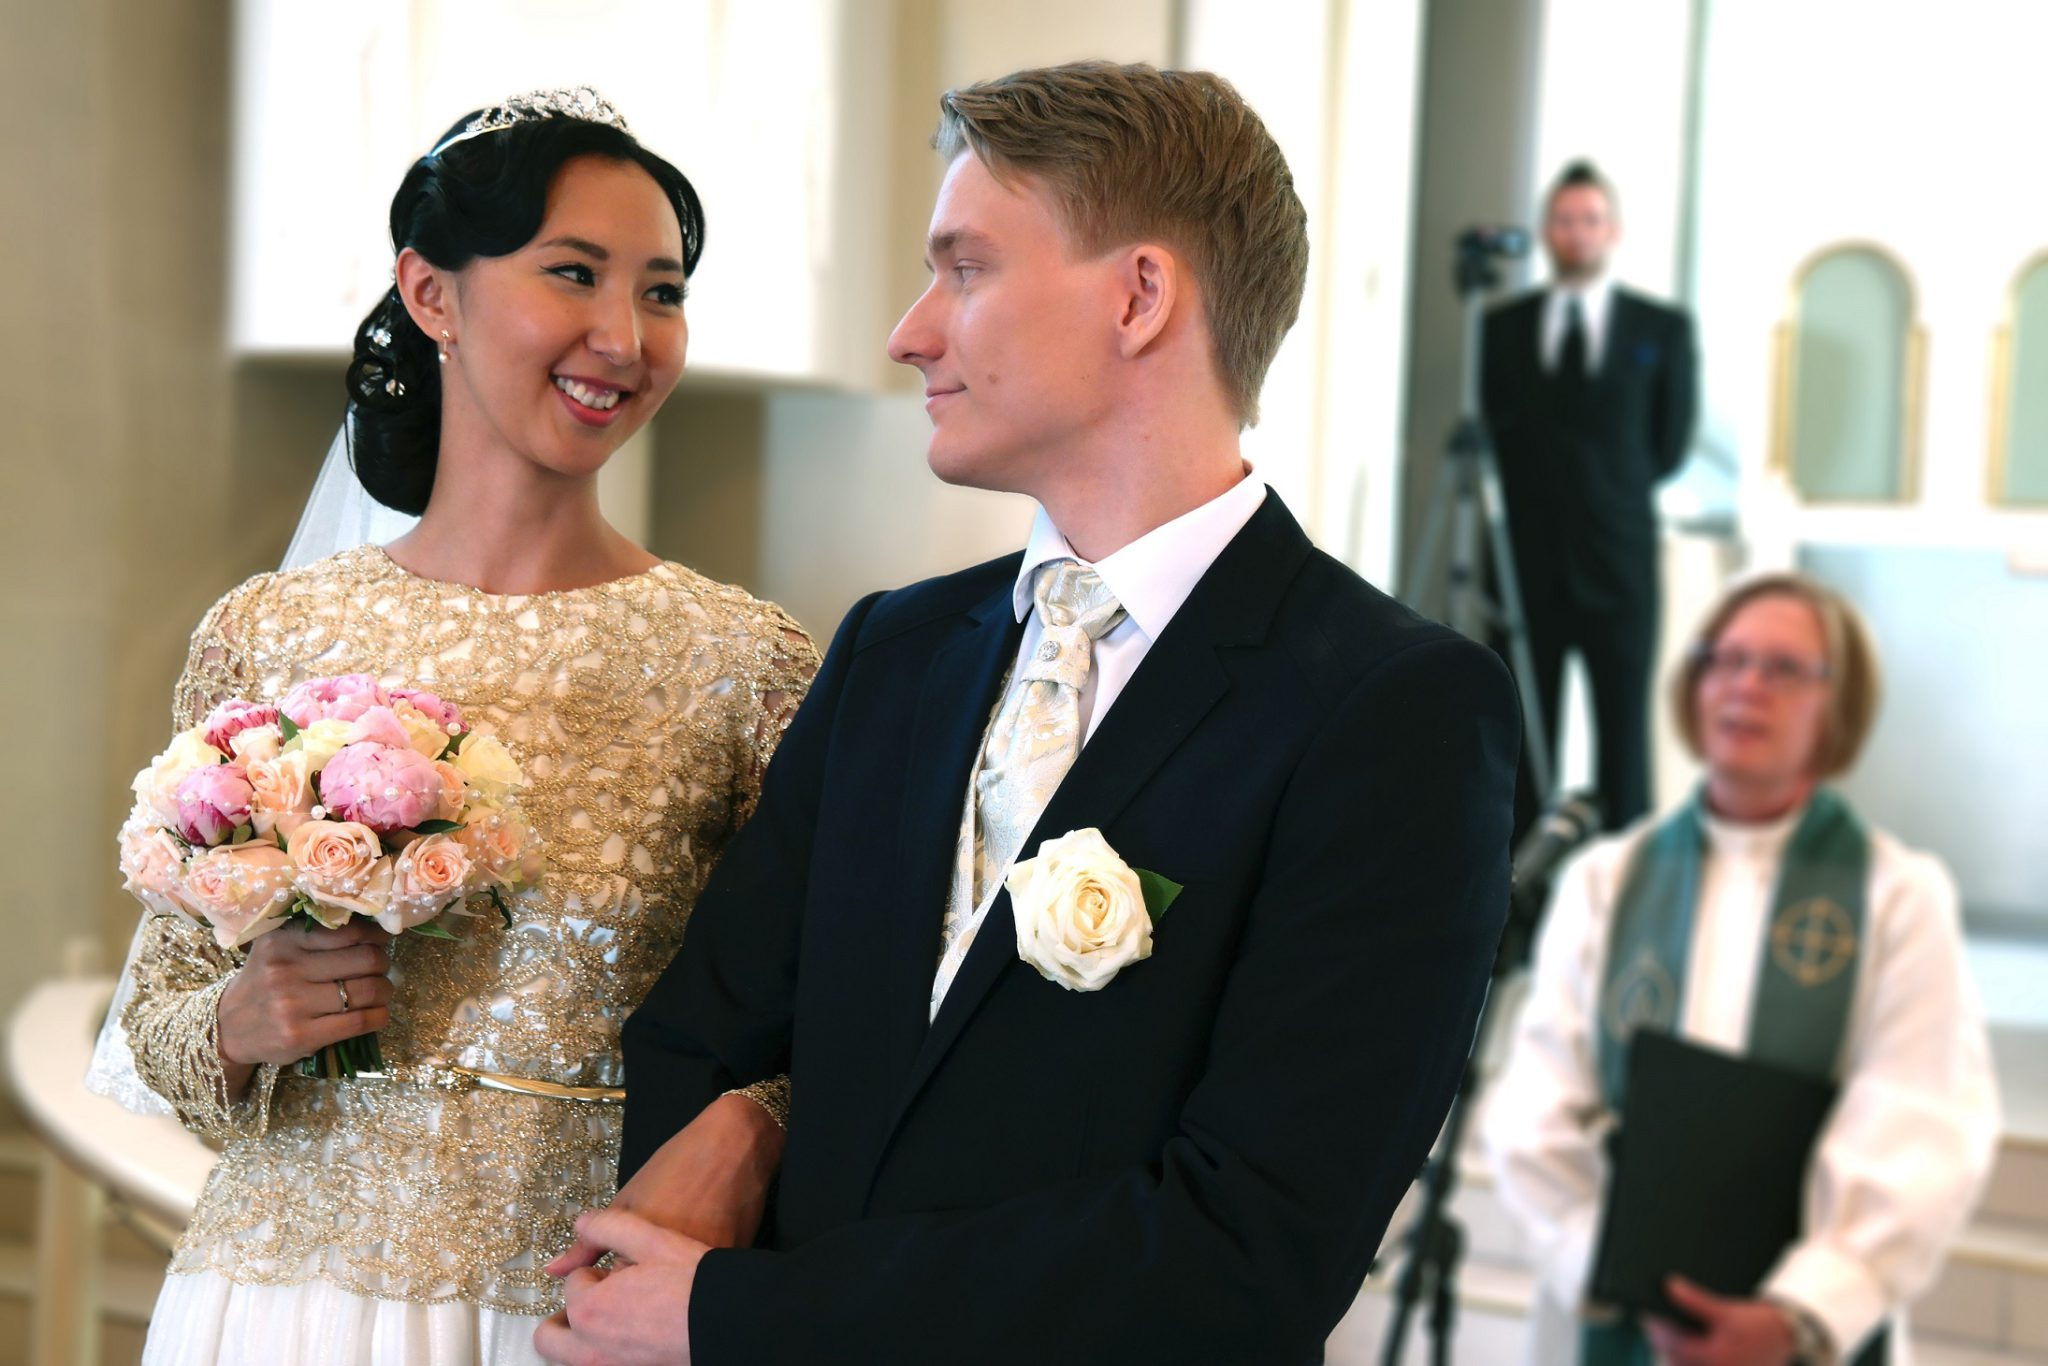 Wedding in Finland – Studying and Living in Finland